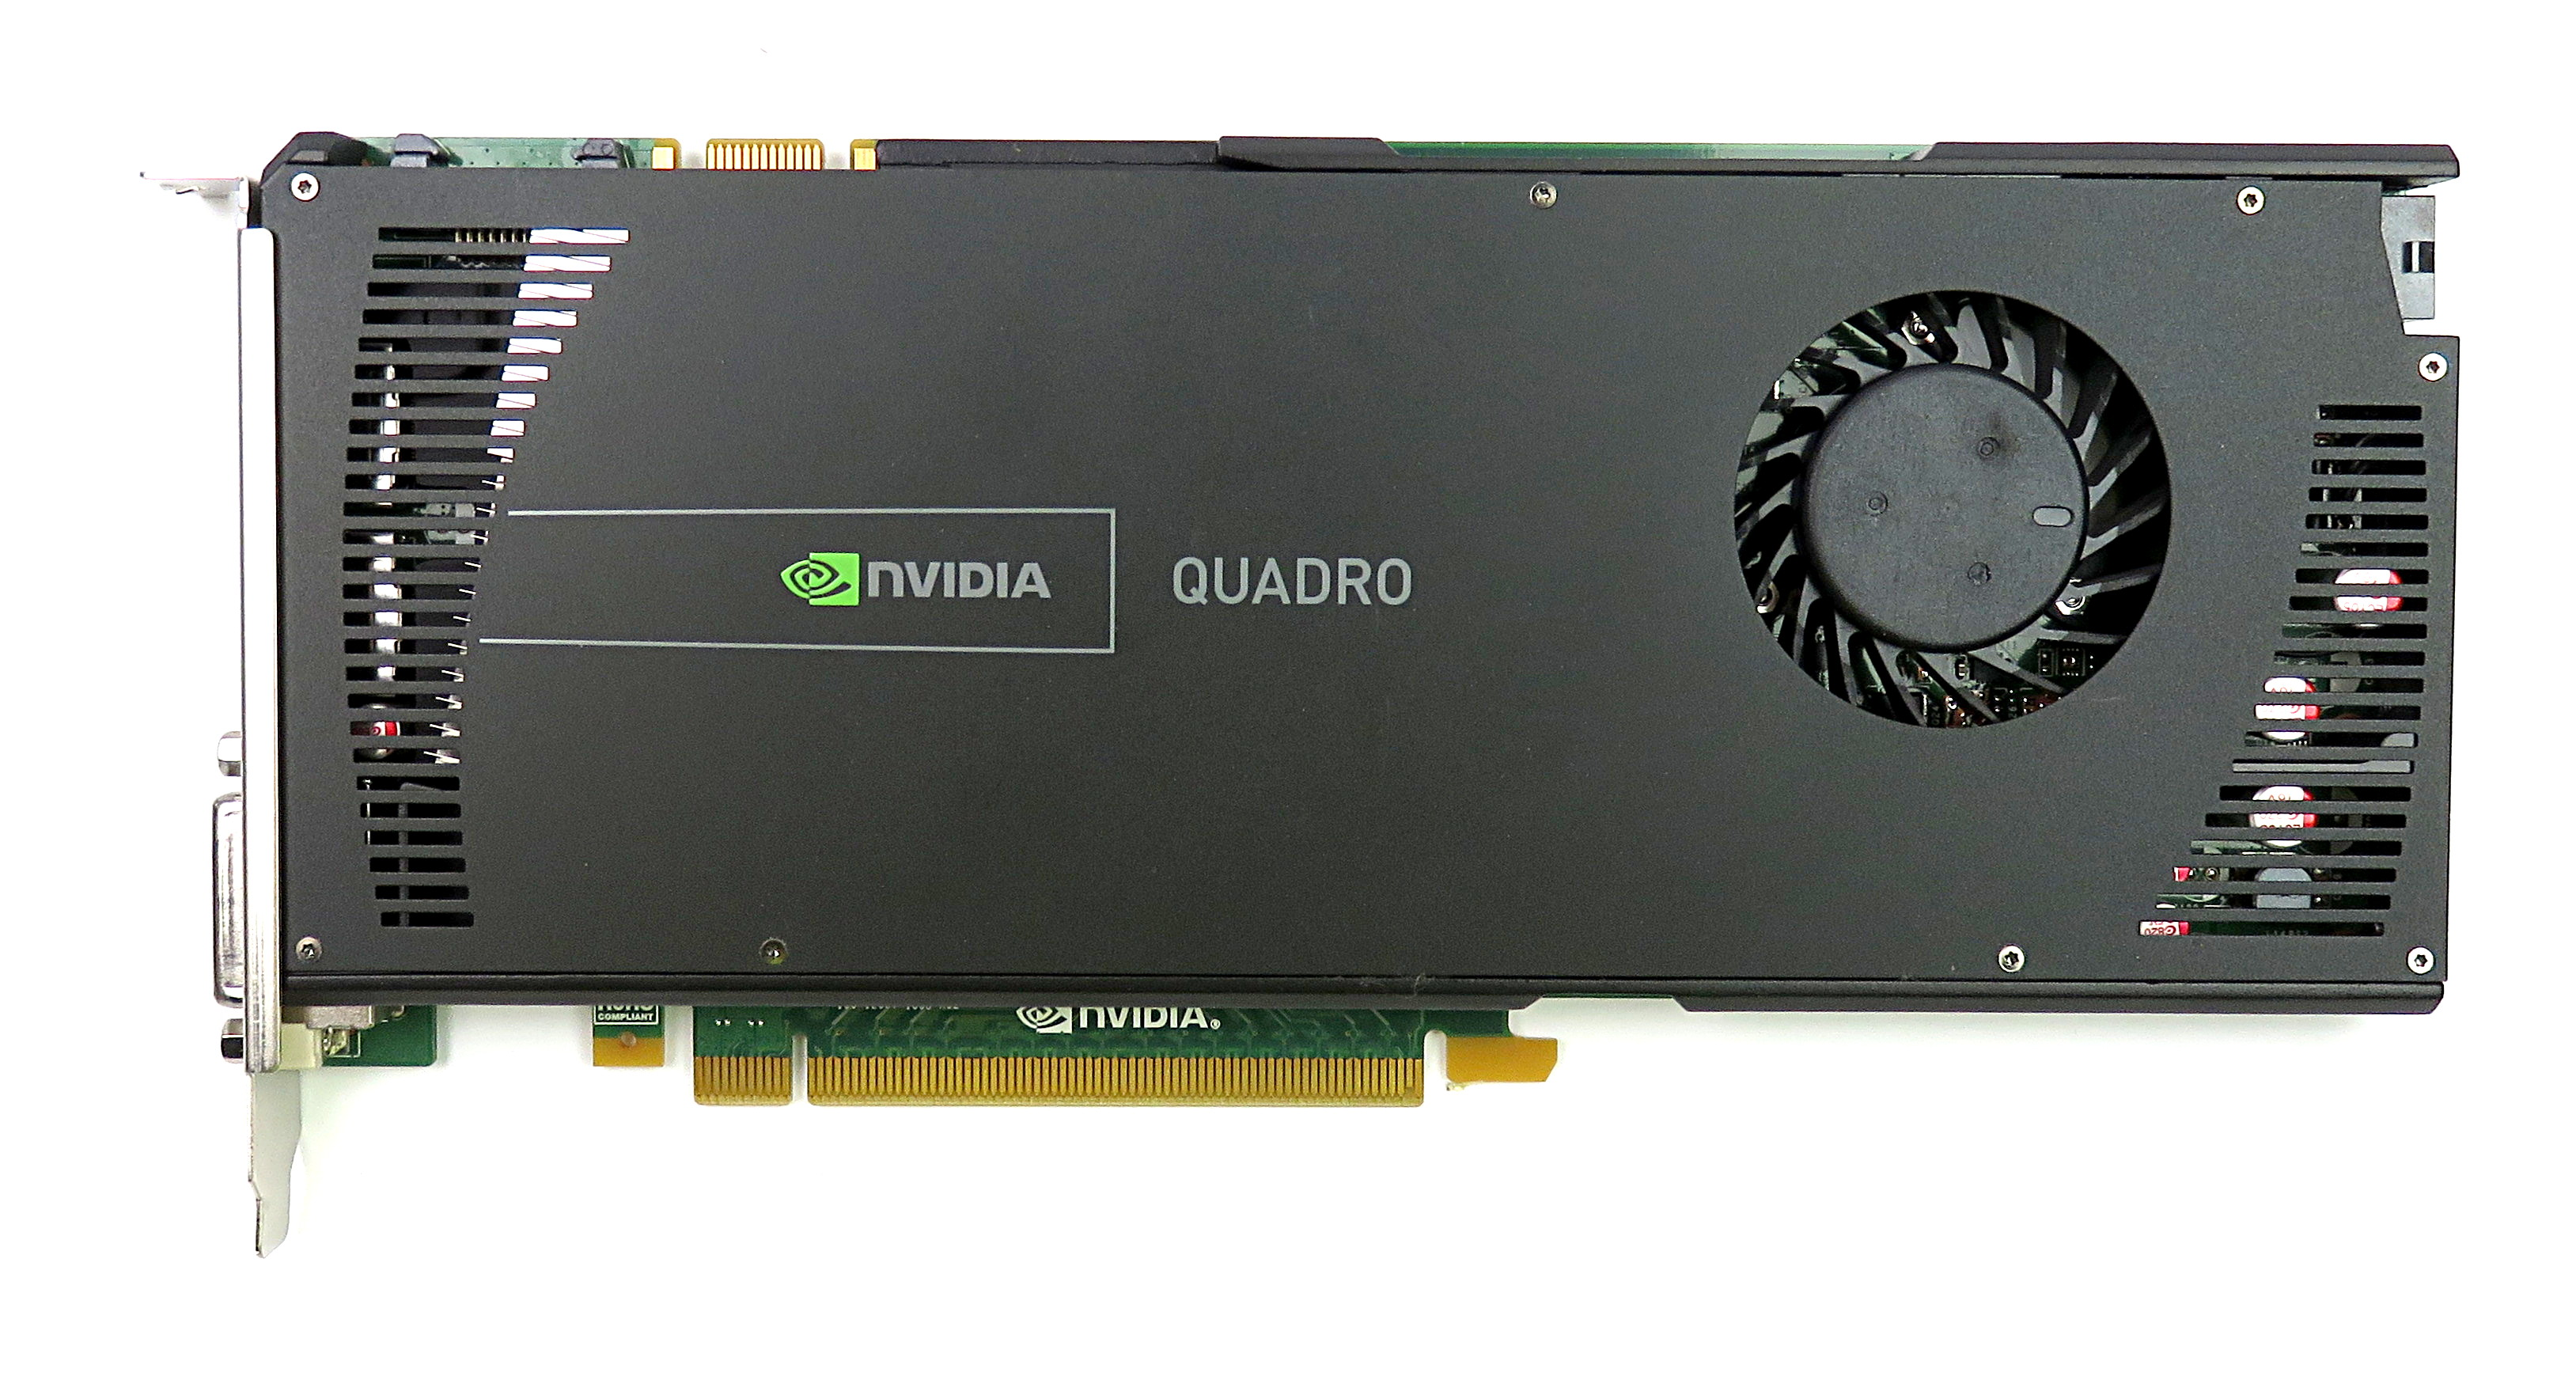 FAULTY Dell 731Y3 nVidia Quadro 4000 2GB GDDR5 Workstation Graphics Card